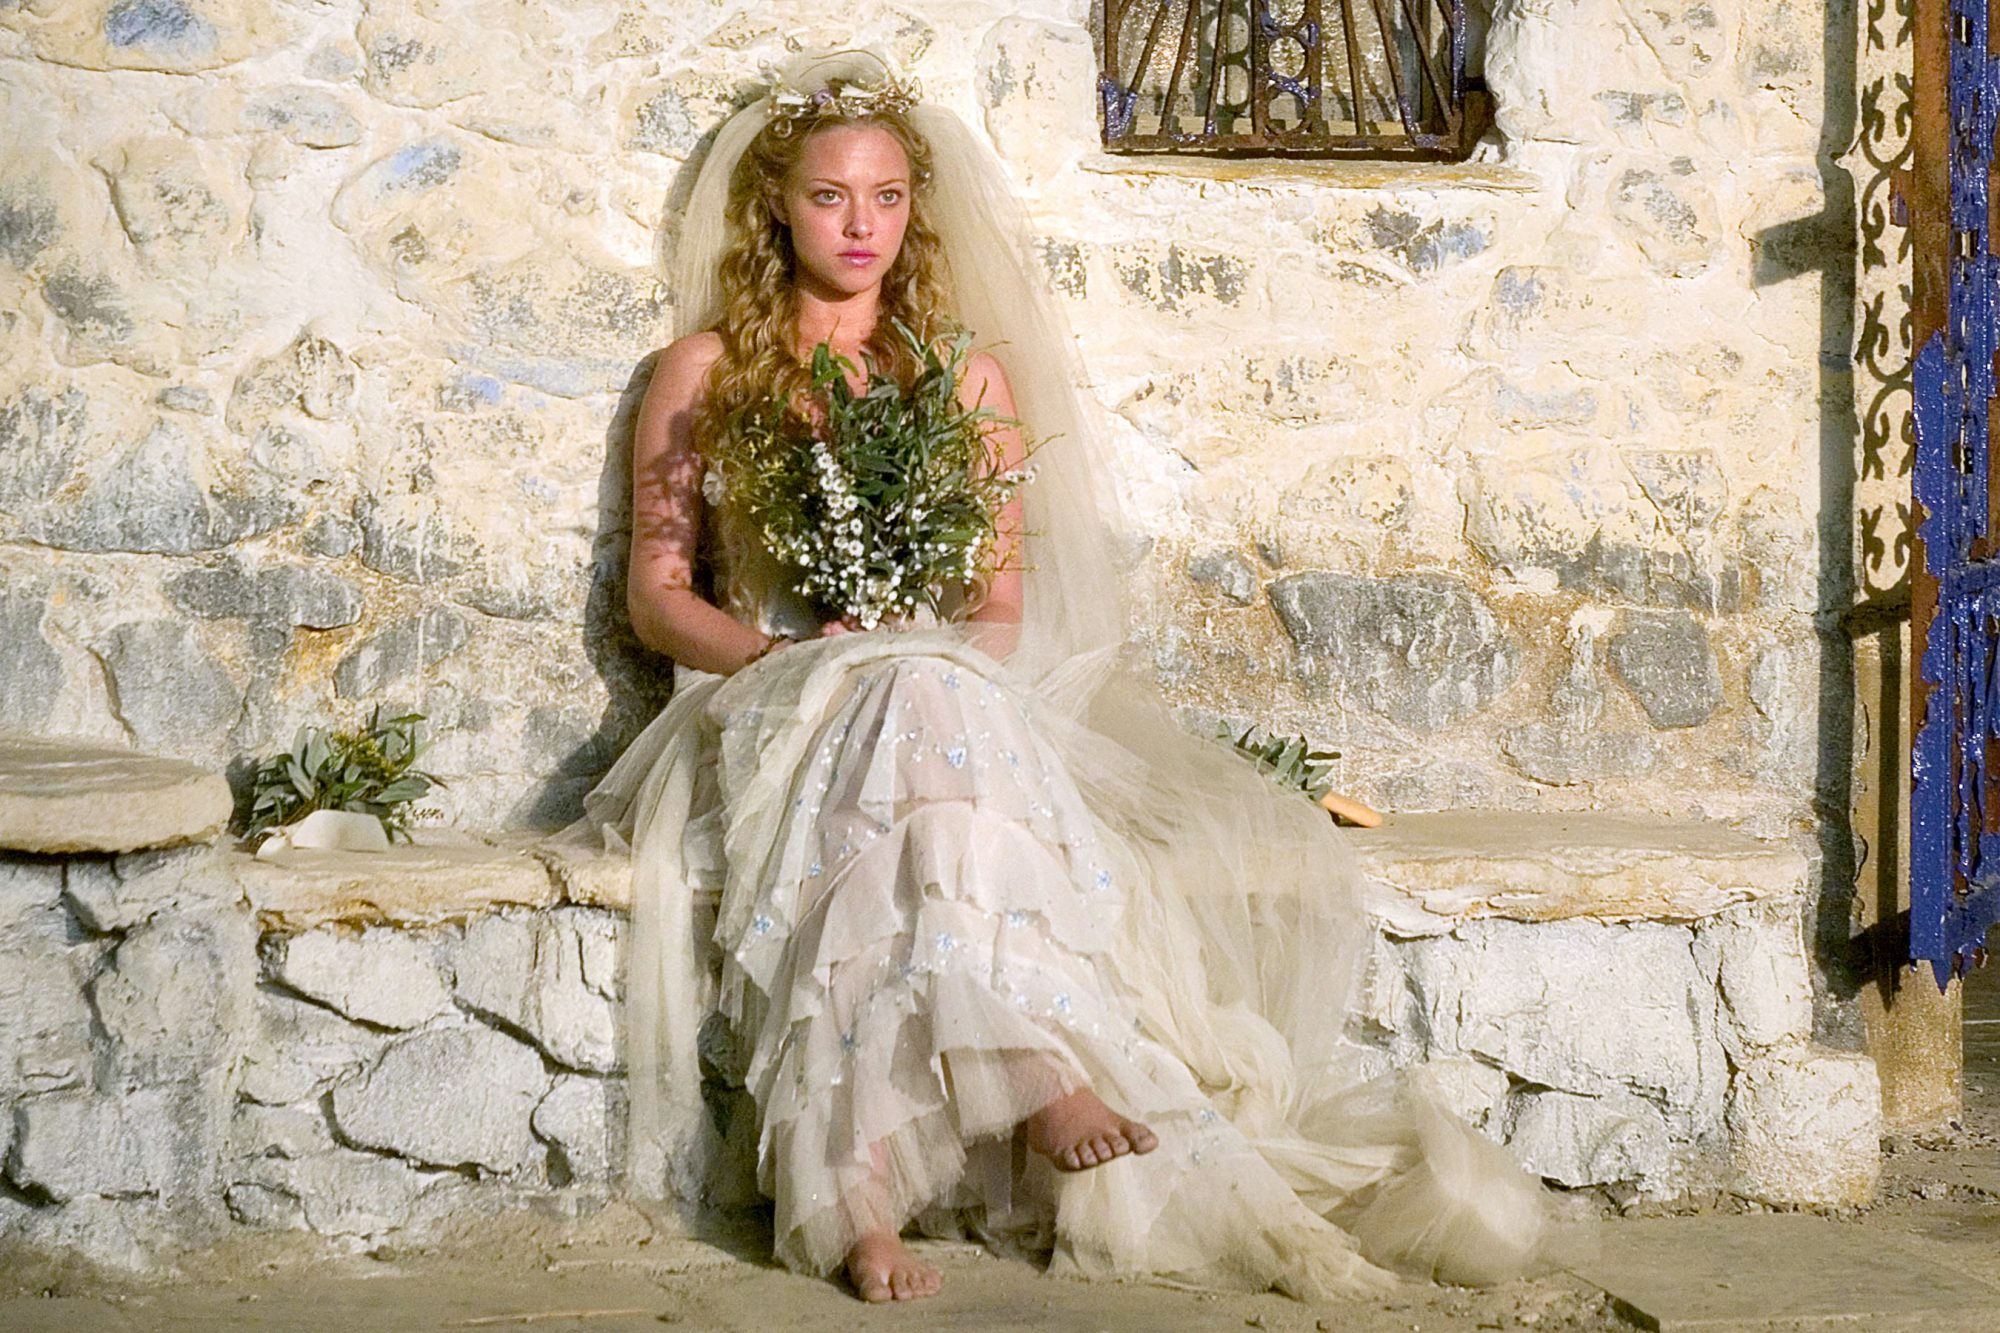 MAMMA MIA!, Amanda Seyfried, 2008. ©Universal/courtesy Everett Collection